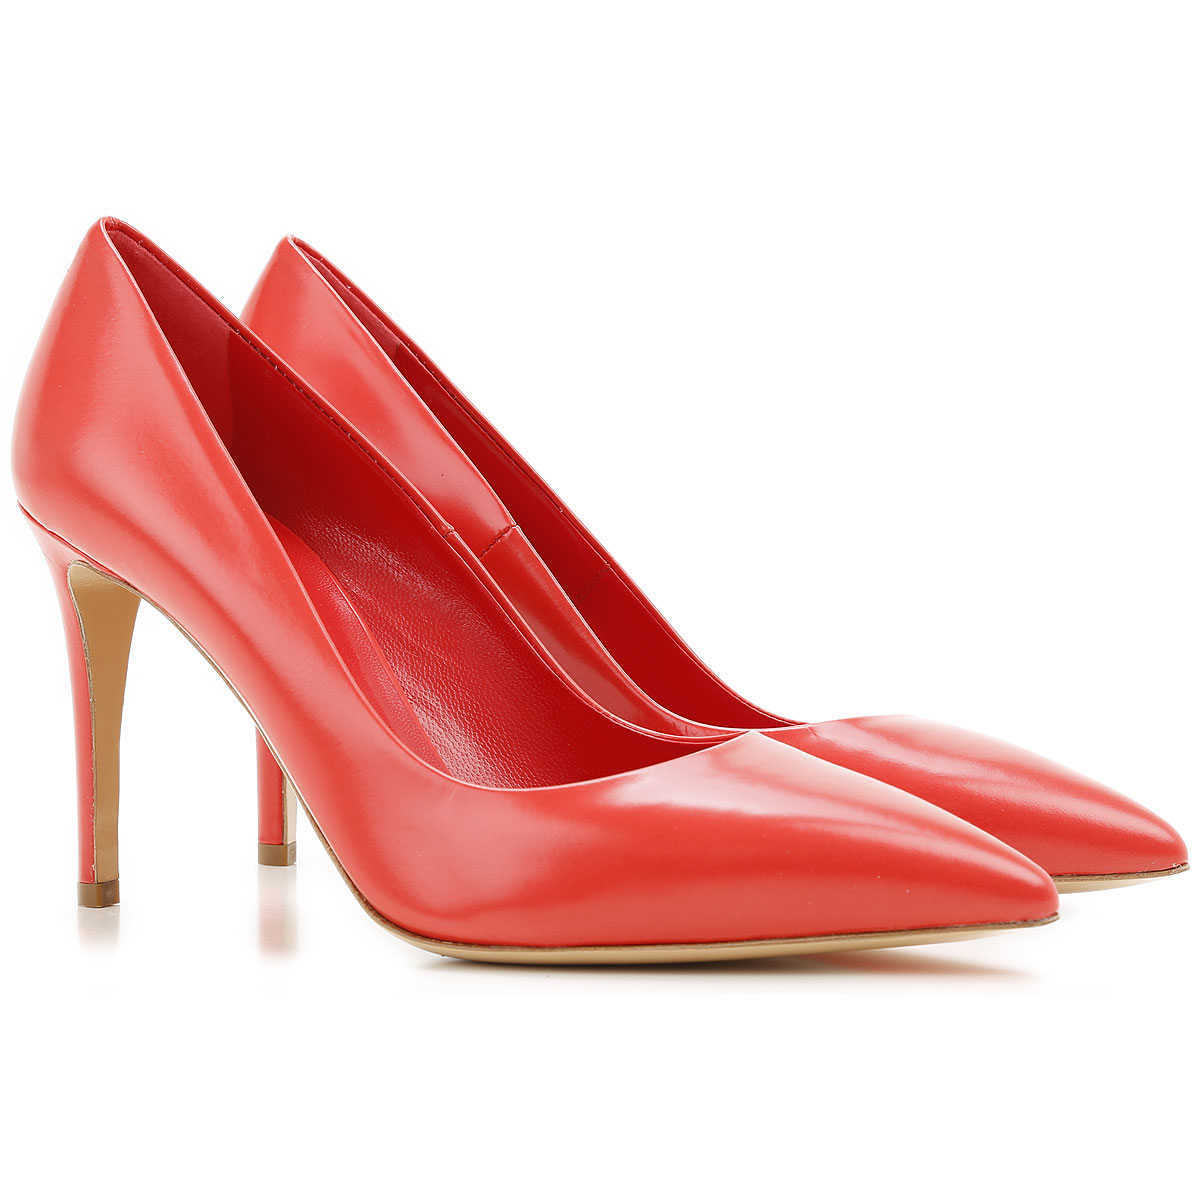 Nina Lilou Pumps & High Heels for Women in Outlet Tomato Red Canada - GOOFASH - Womens PUMPS